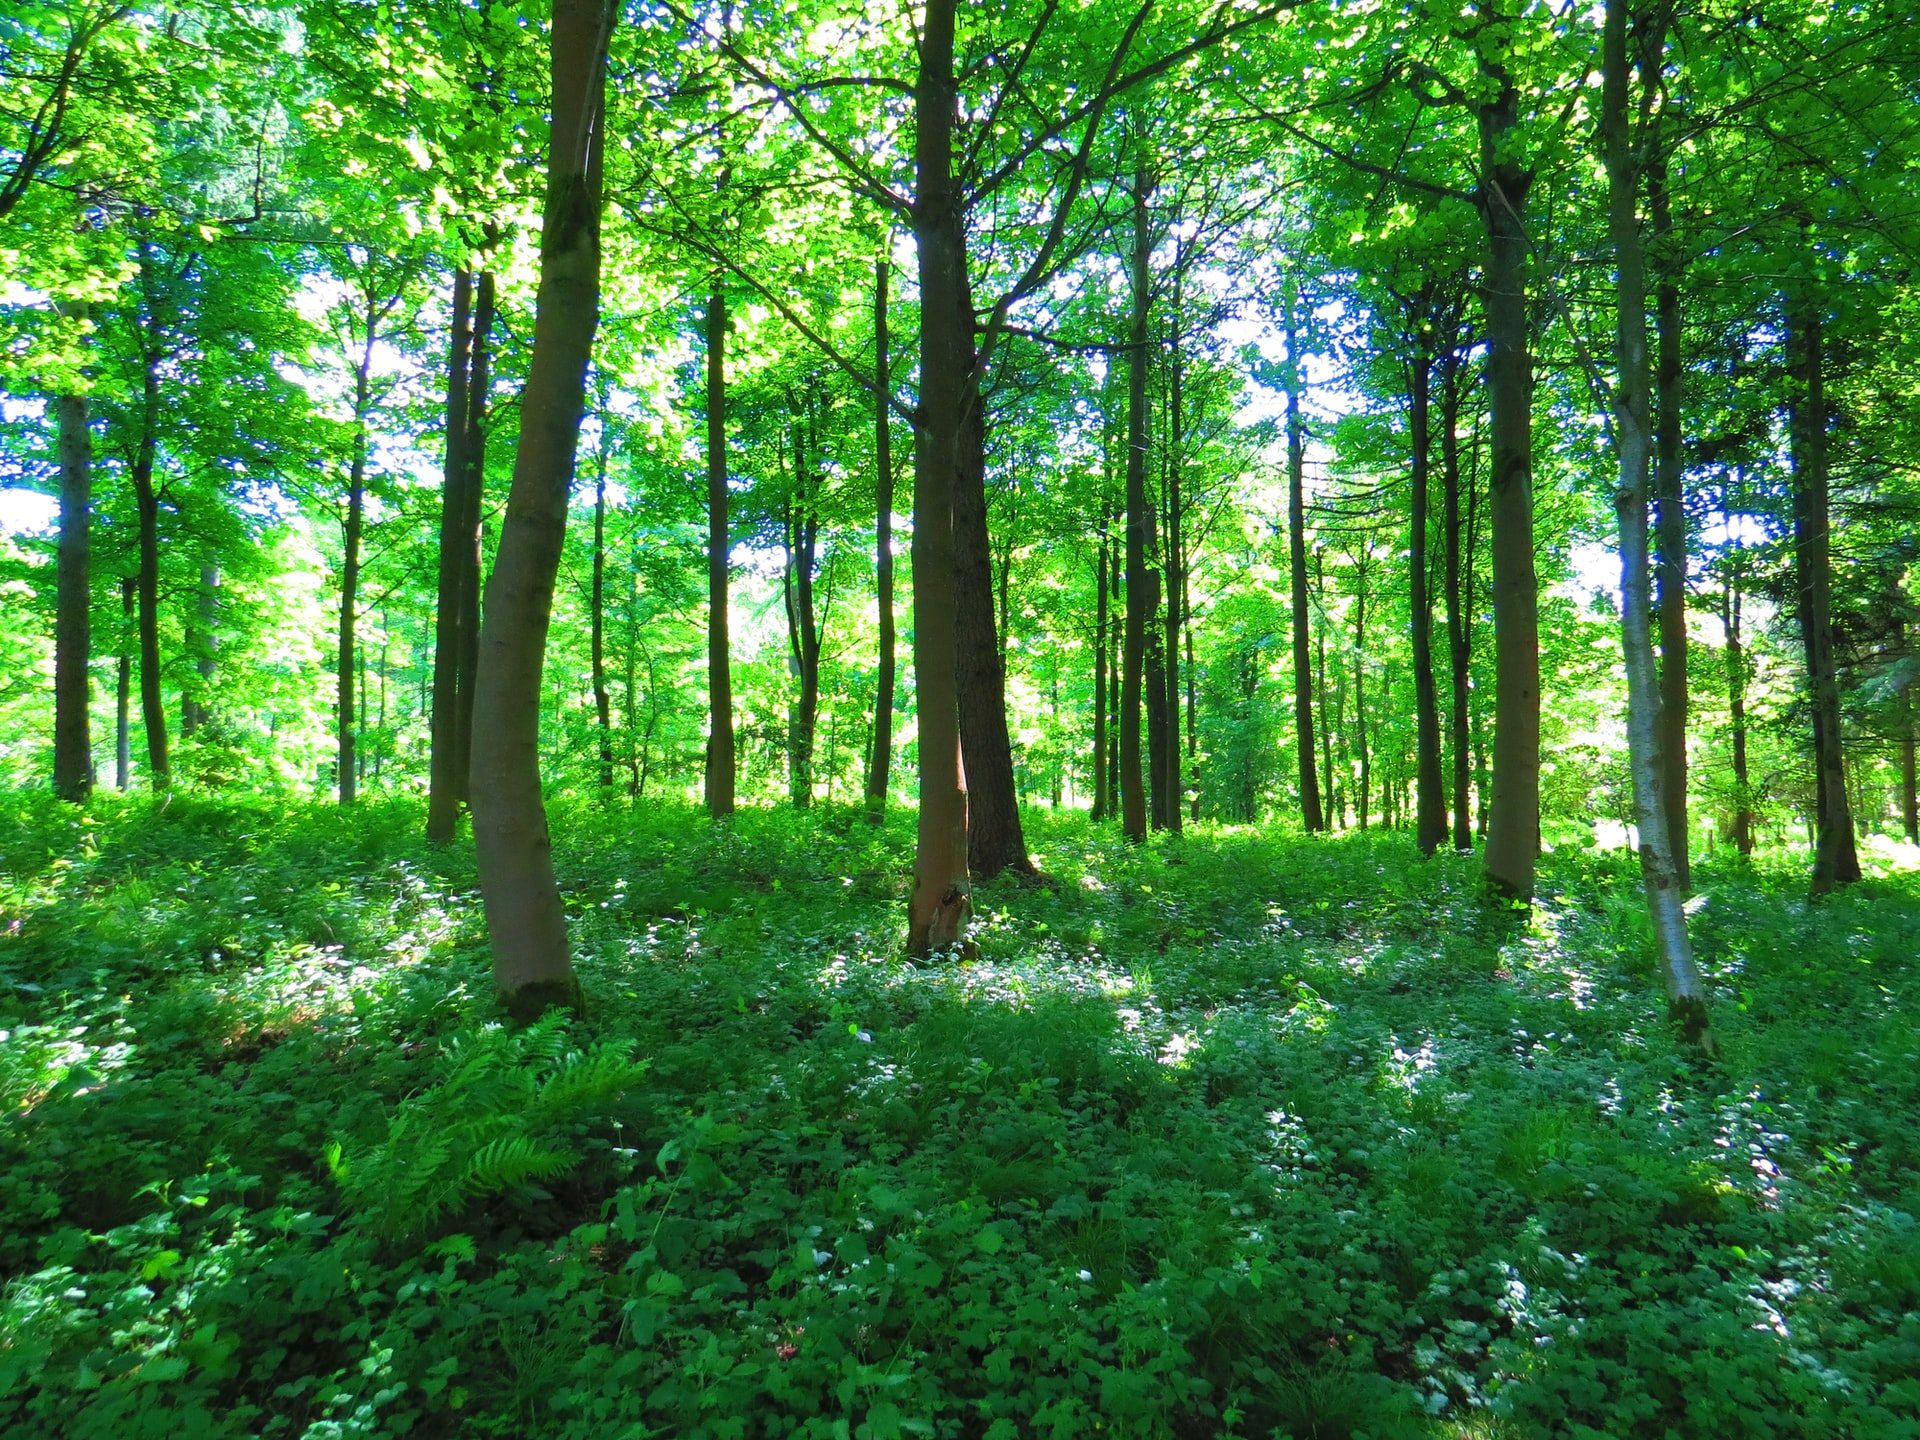 Green woods with sun filtering through tall trees